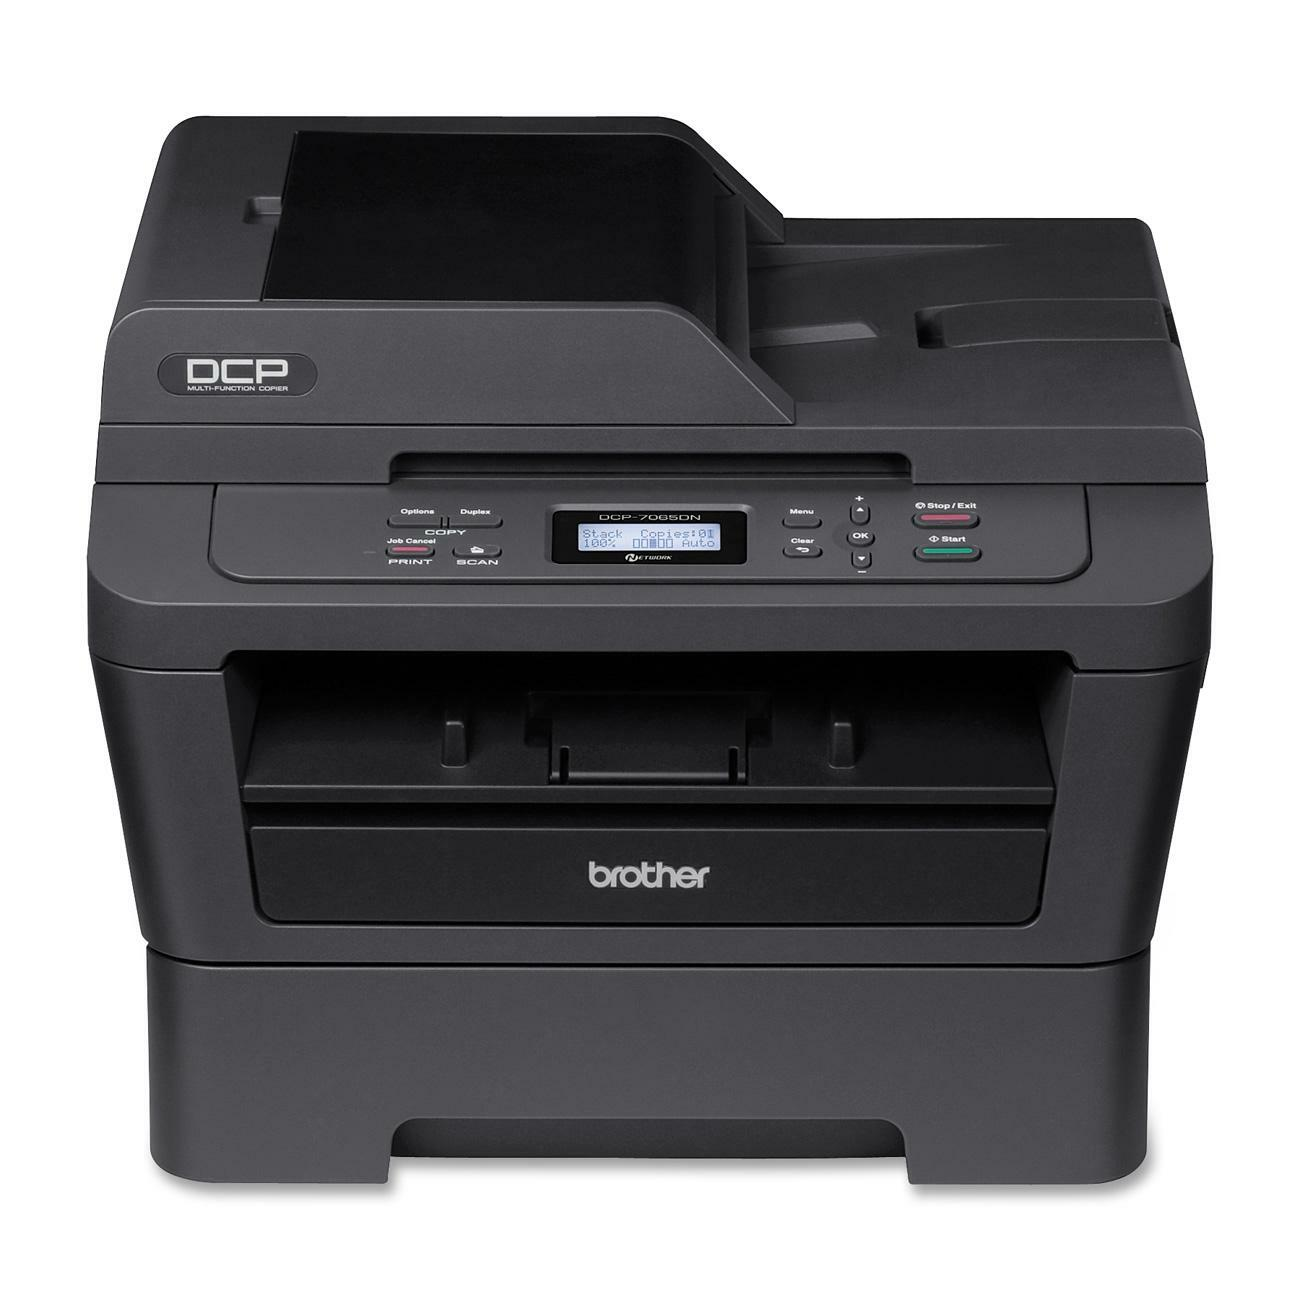 Brother DCP-7065DN Laser Multifunction Printer - Monochrome - Plain Paper Print - Desktop